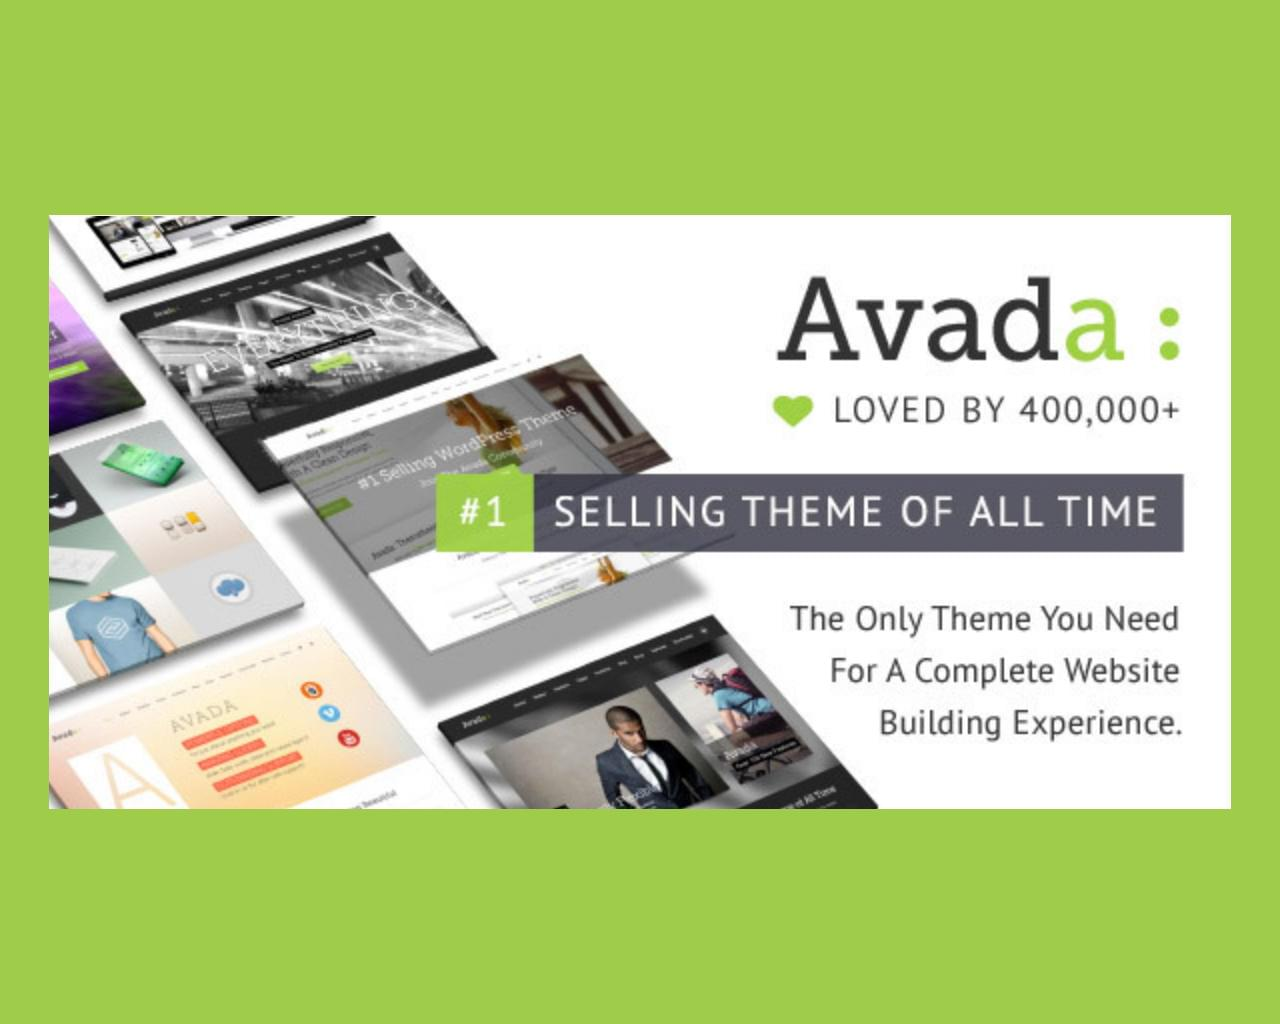 I will create a complete website in avada,divi ,electro wordpress theme